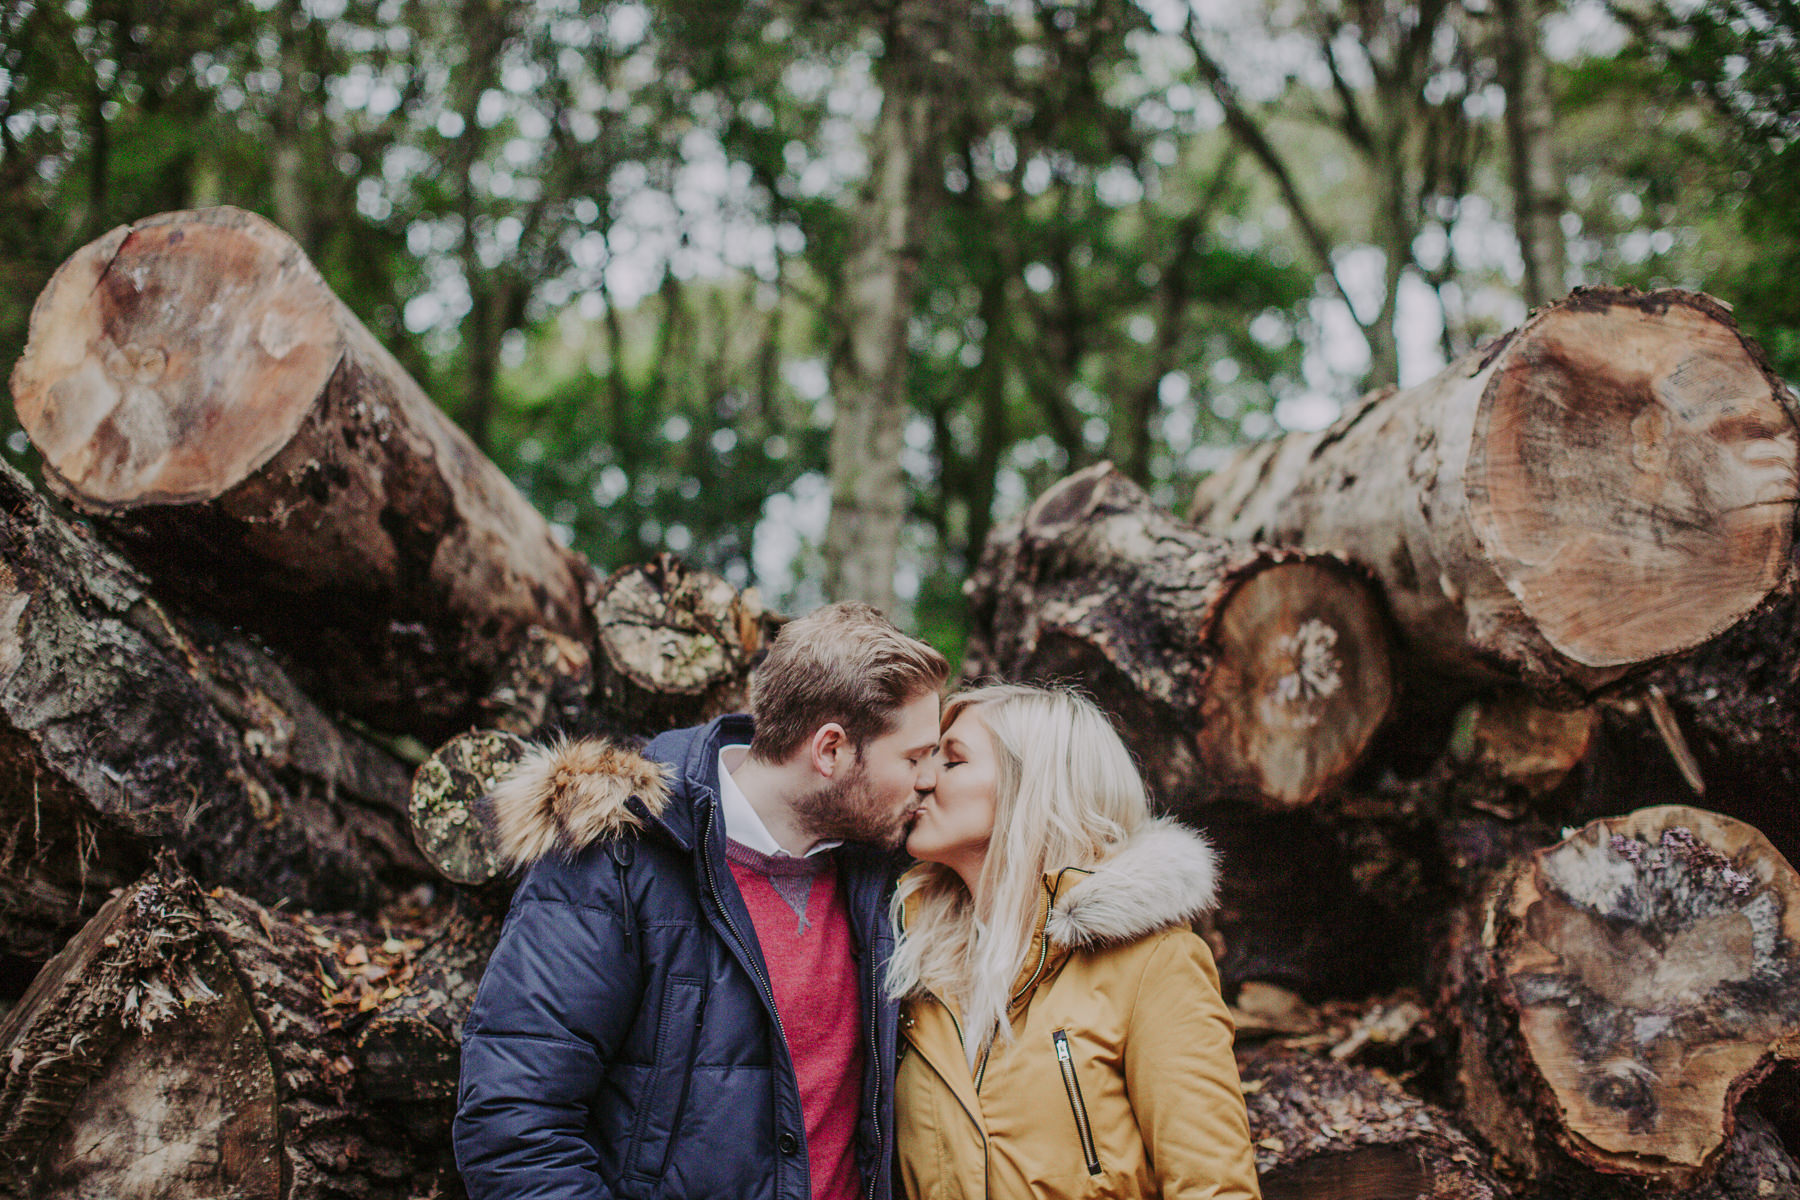 Emily & Phil | Newmillerdam engagement shoot 36